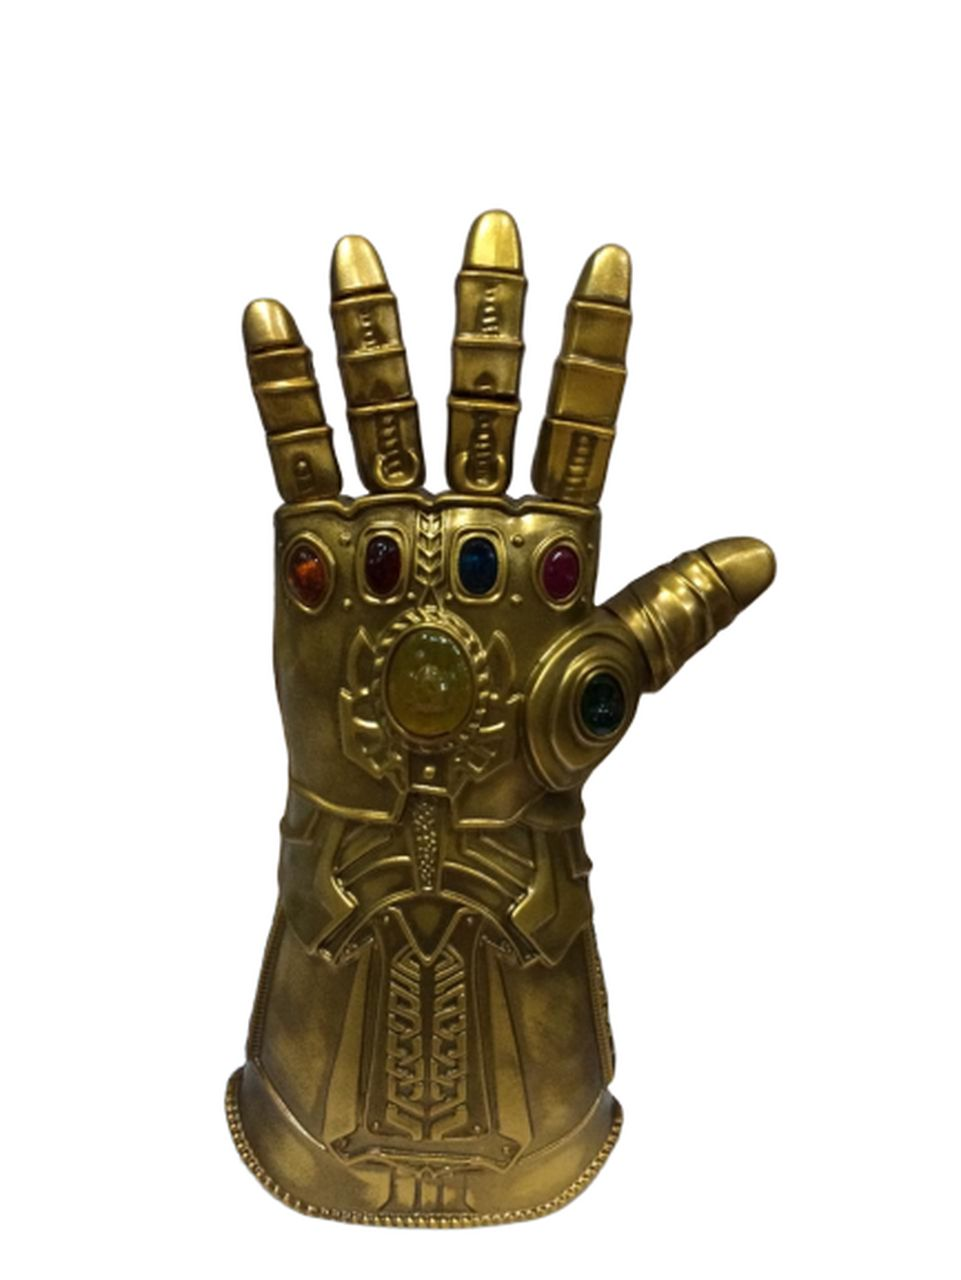 Carregador (Power Bank) Manopla Do Infinito (Infinity Gauntlet): Vingadores (Avengers)